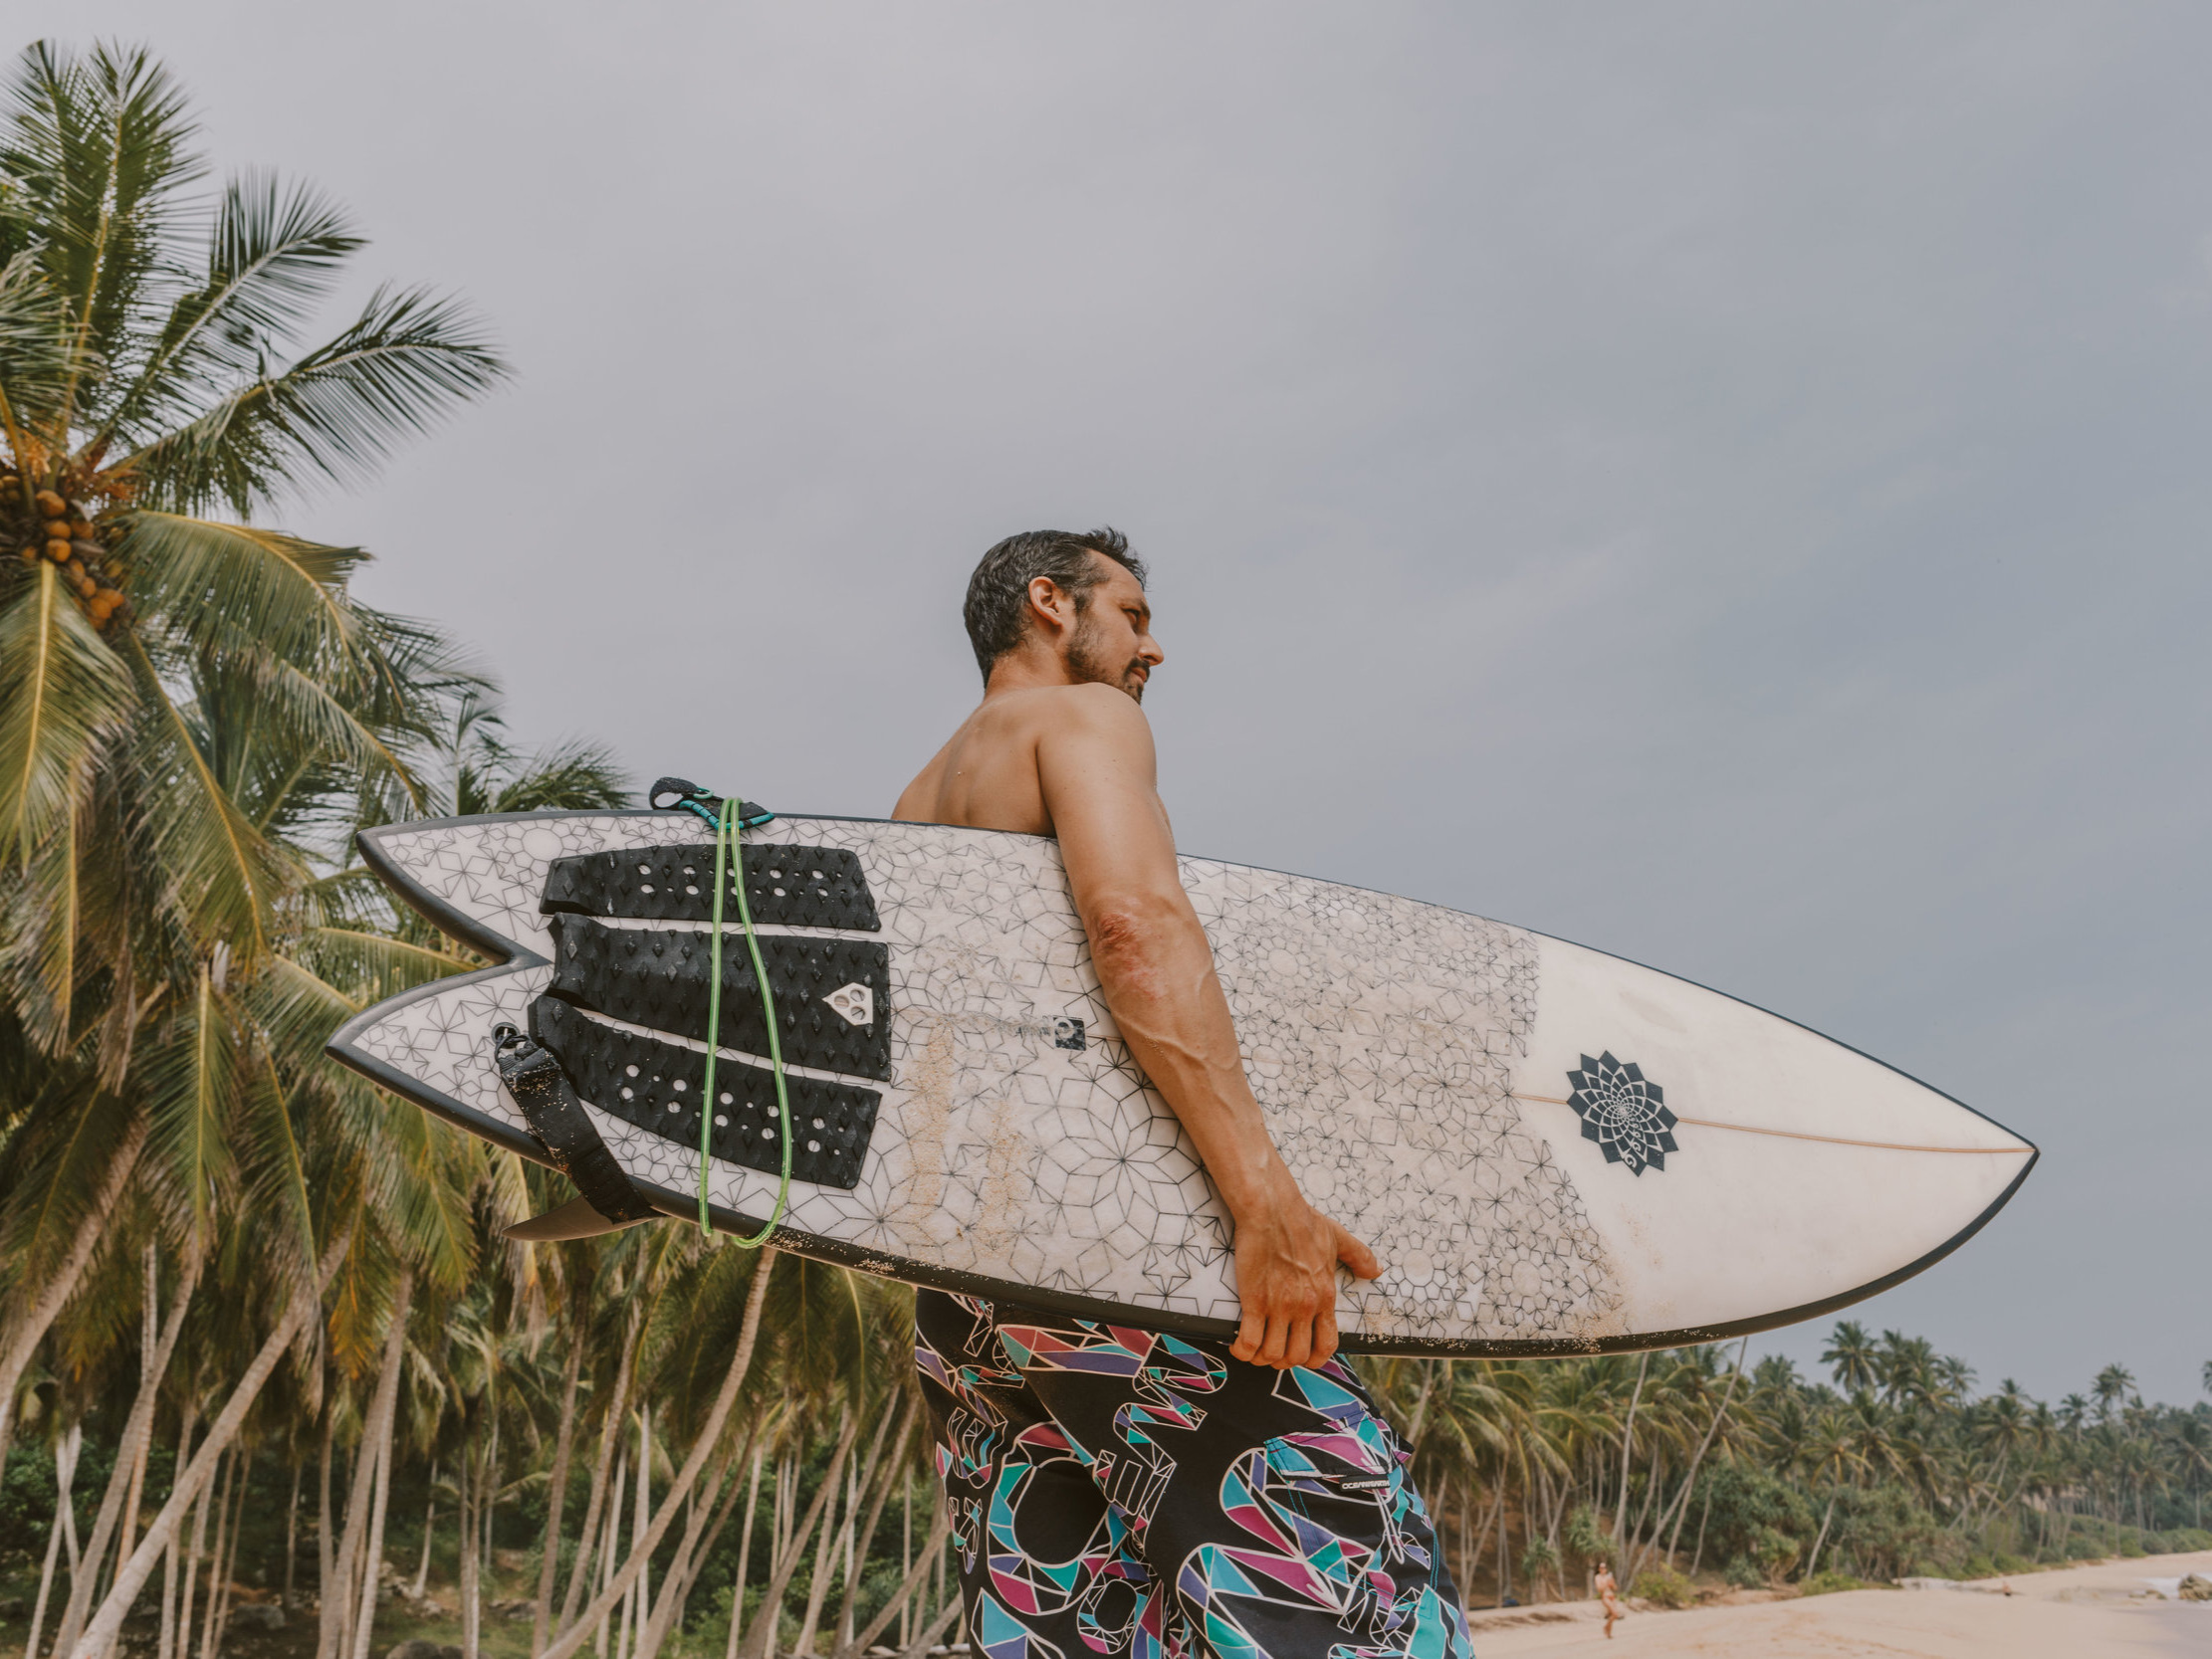 Surfing - Located just five minutes away is Fisherman's Bay which offers a hidden wave spot. The Tangalle waves are hardly affected by onshore winds due to the beach being located between hills and rocks. There fore waves are ideal for experts as well as beginners.